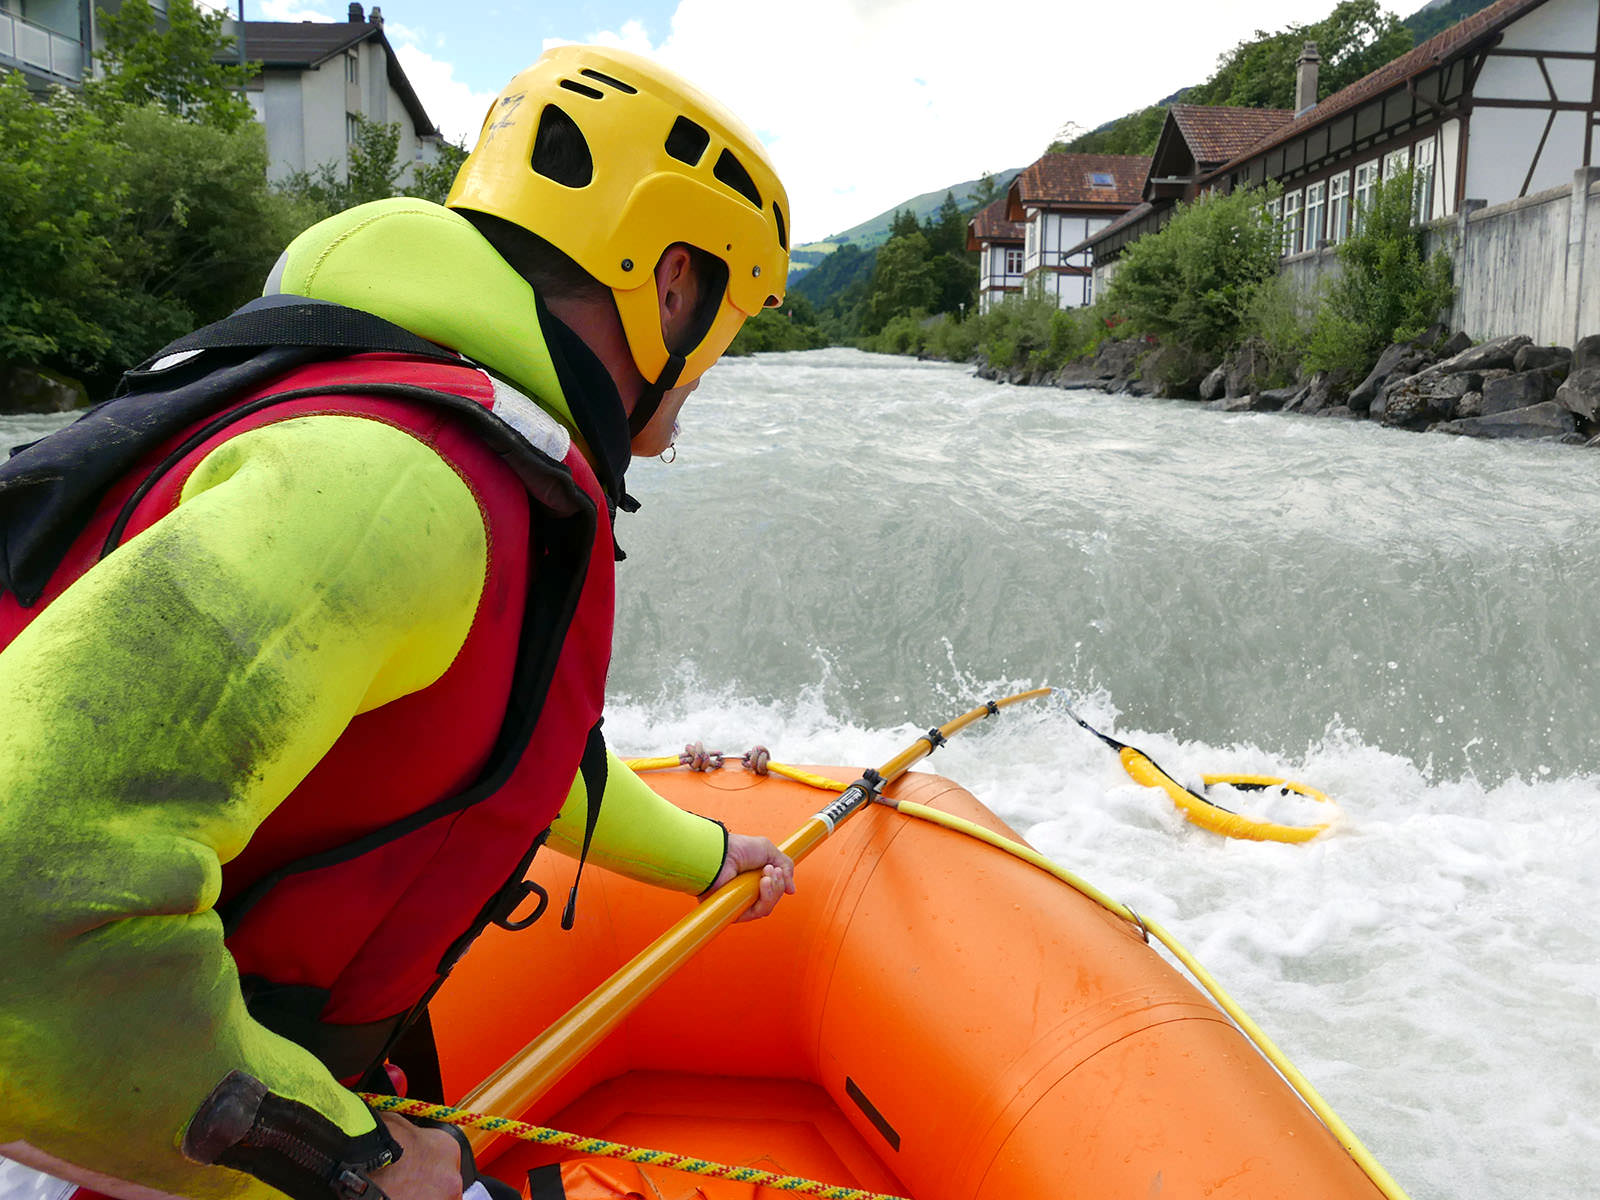 Rescue in low head dams (weirs)